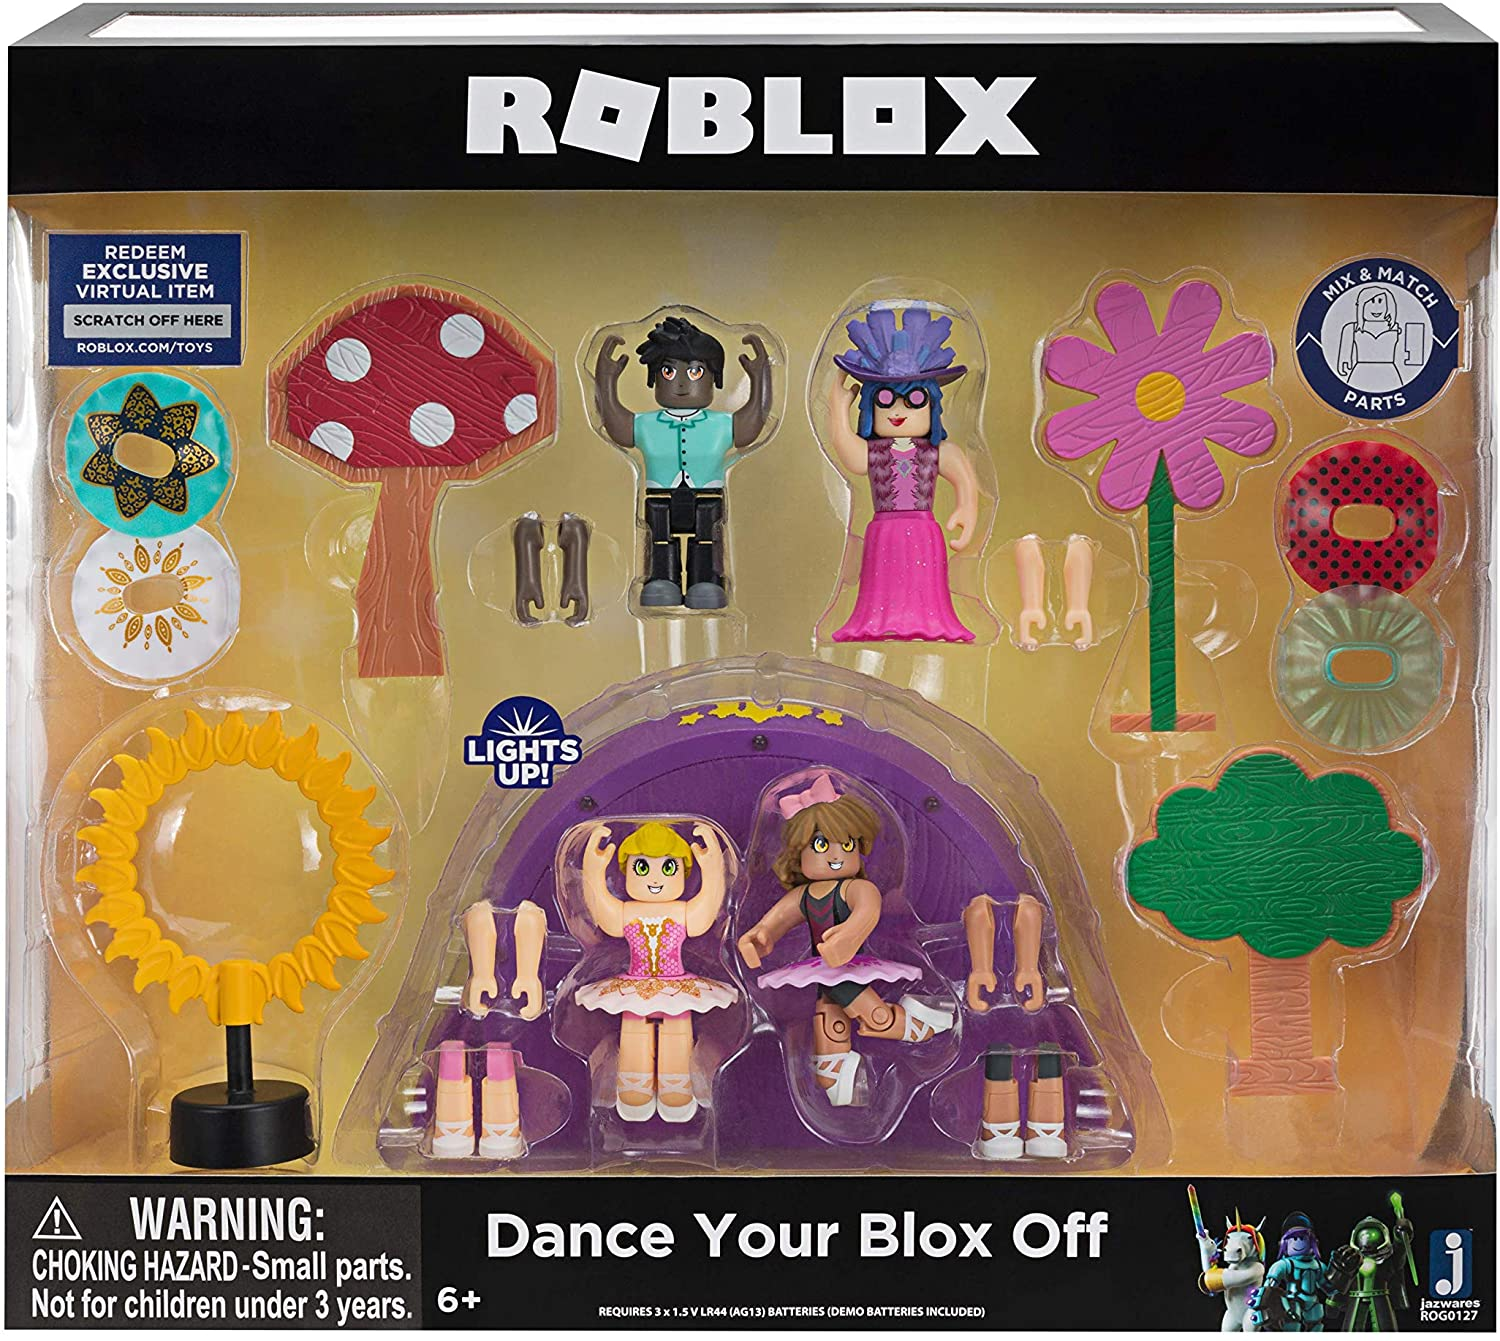 Roblox Dance Outfits Amazon Com Roblox Celebrity Collection Dance Your Blox Off Playset Includes Exclusive Virtual Item Amazon Exclusive Toys Games